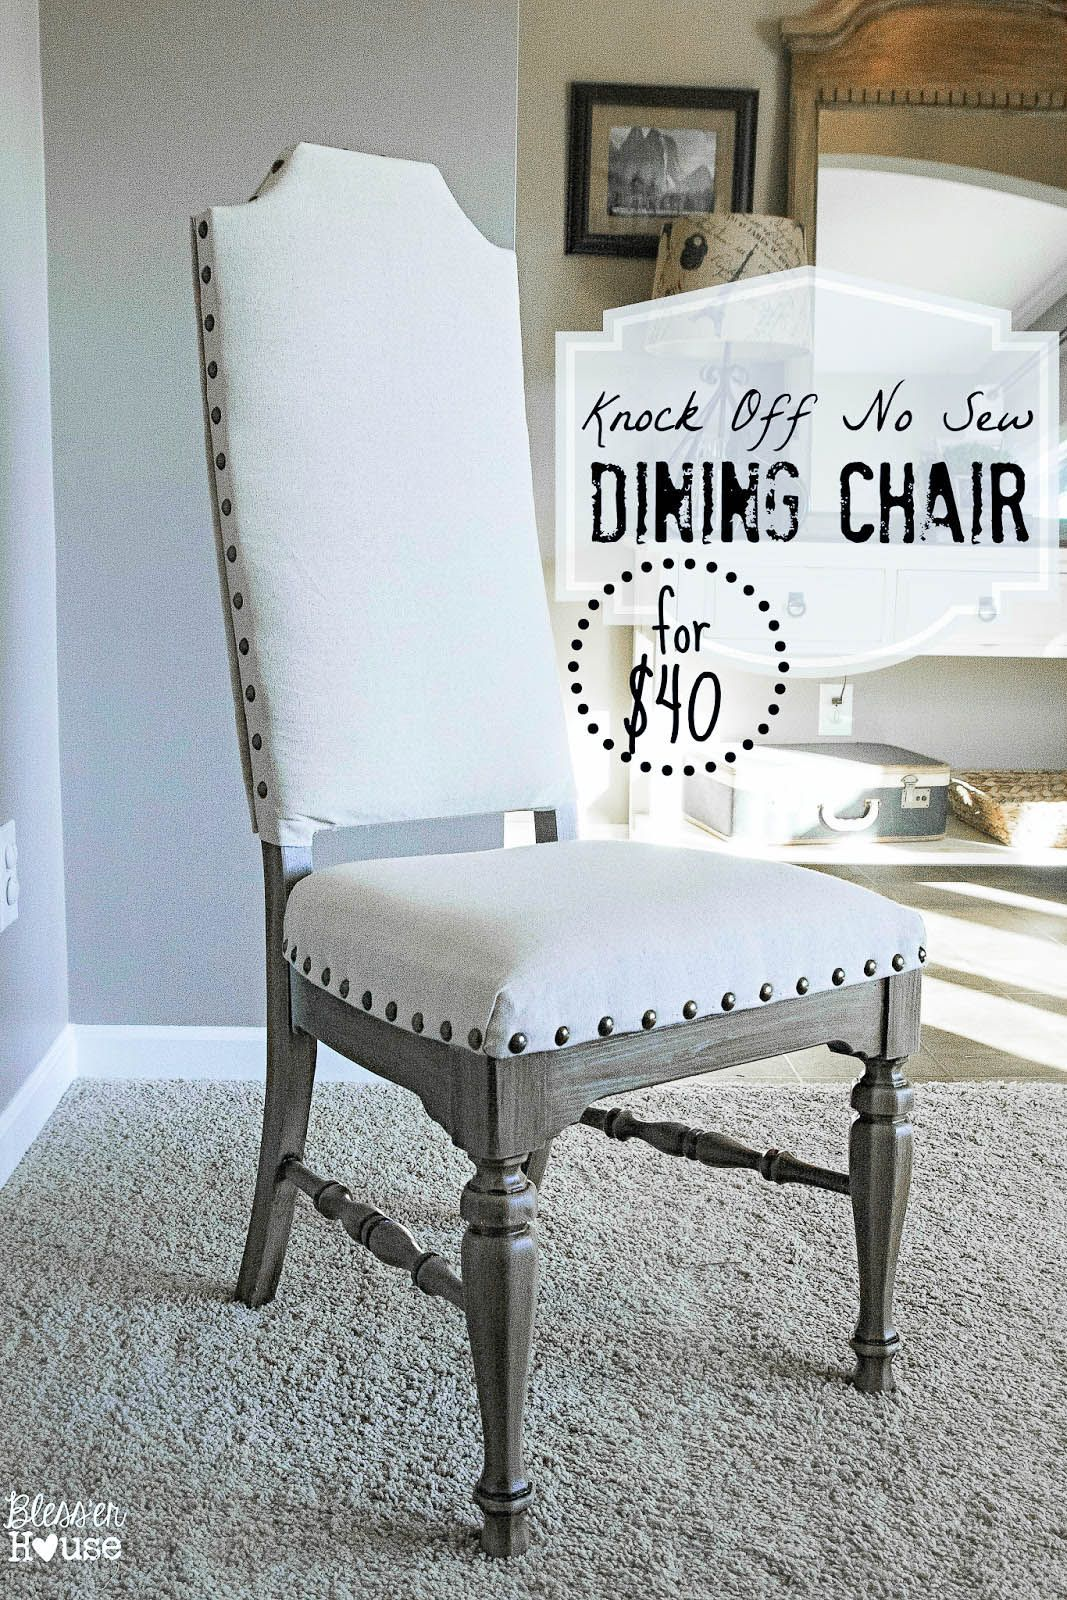 Knock Off No Sew Dining Chairs | Diy möbel, Stuhl und Lustiges